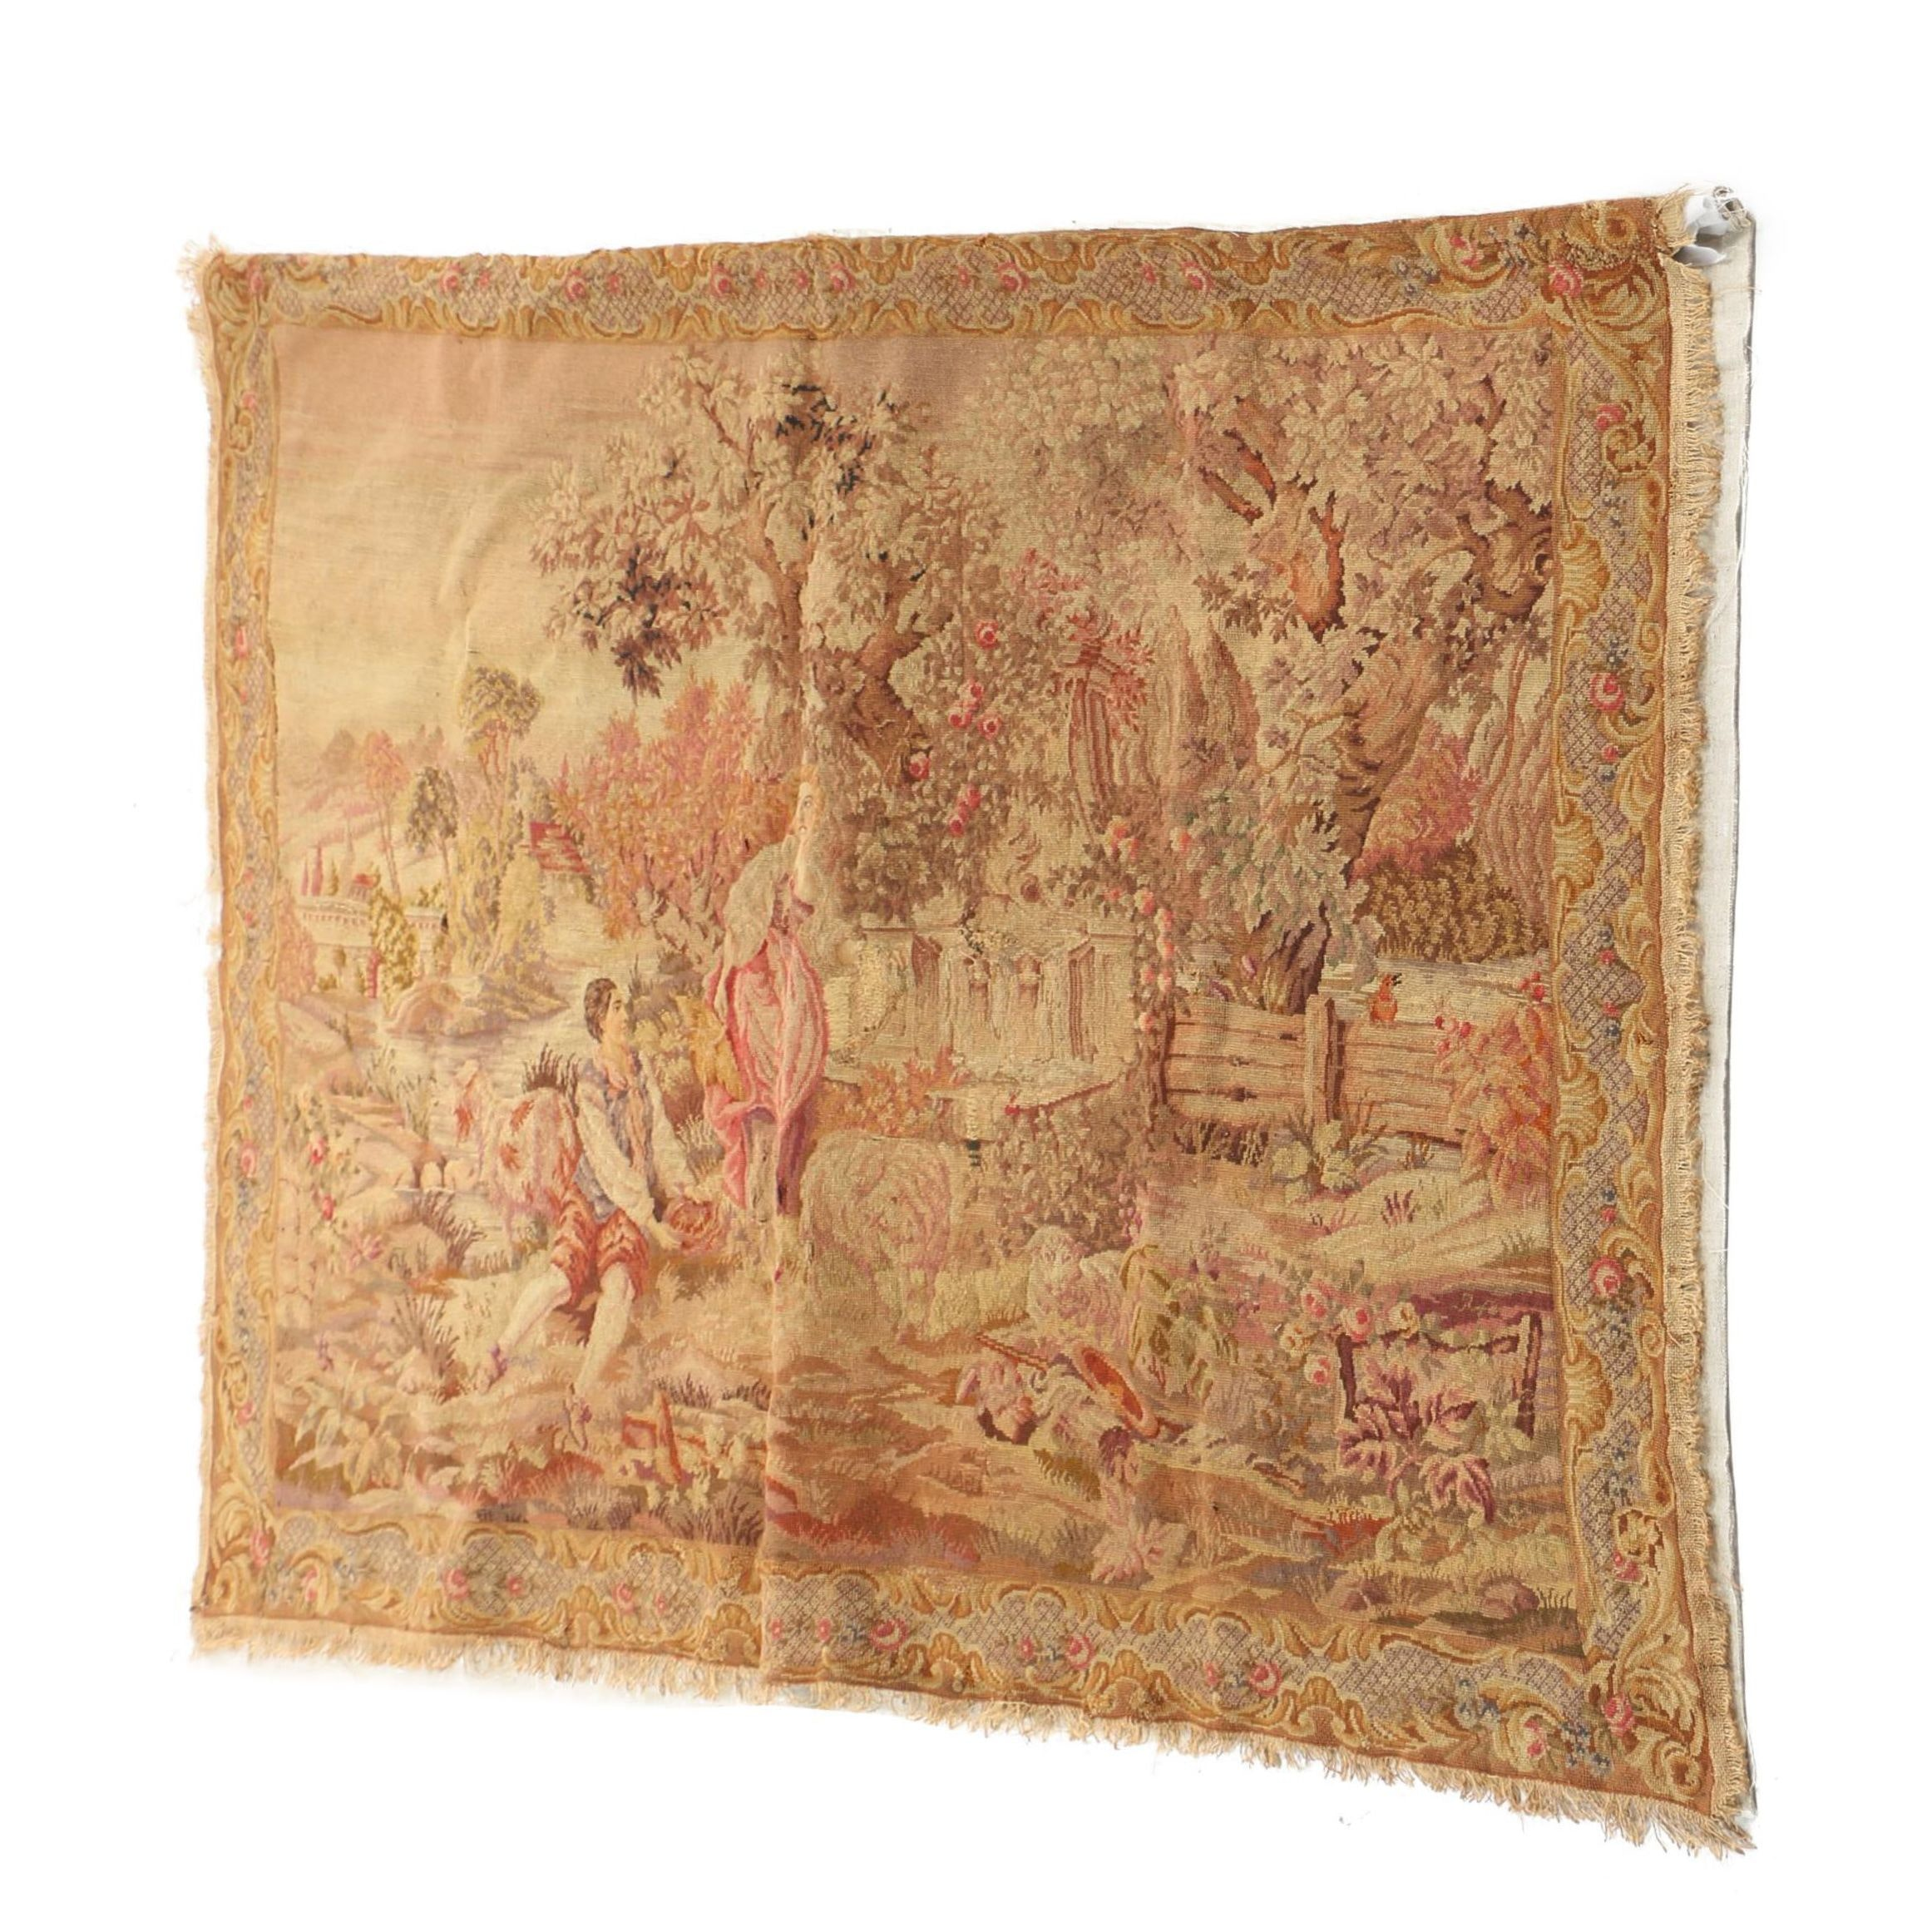 Handwoven Antique Pastoral Tapestry